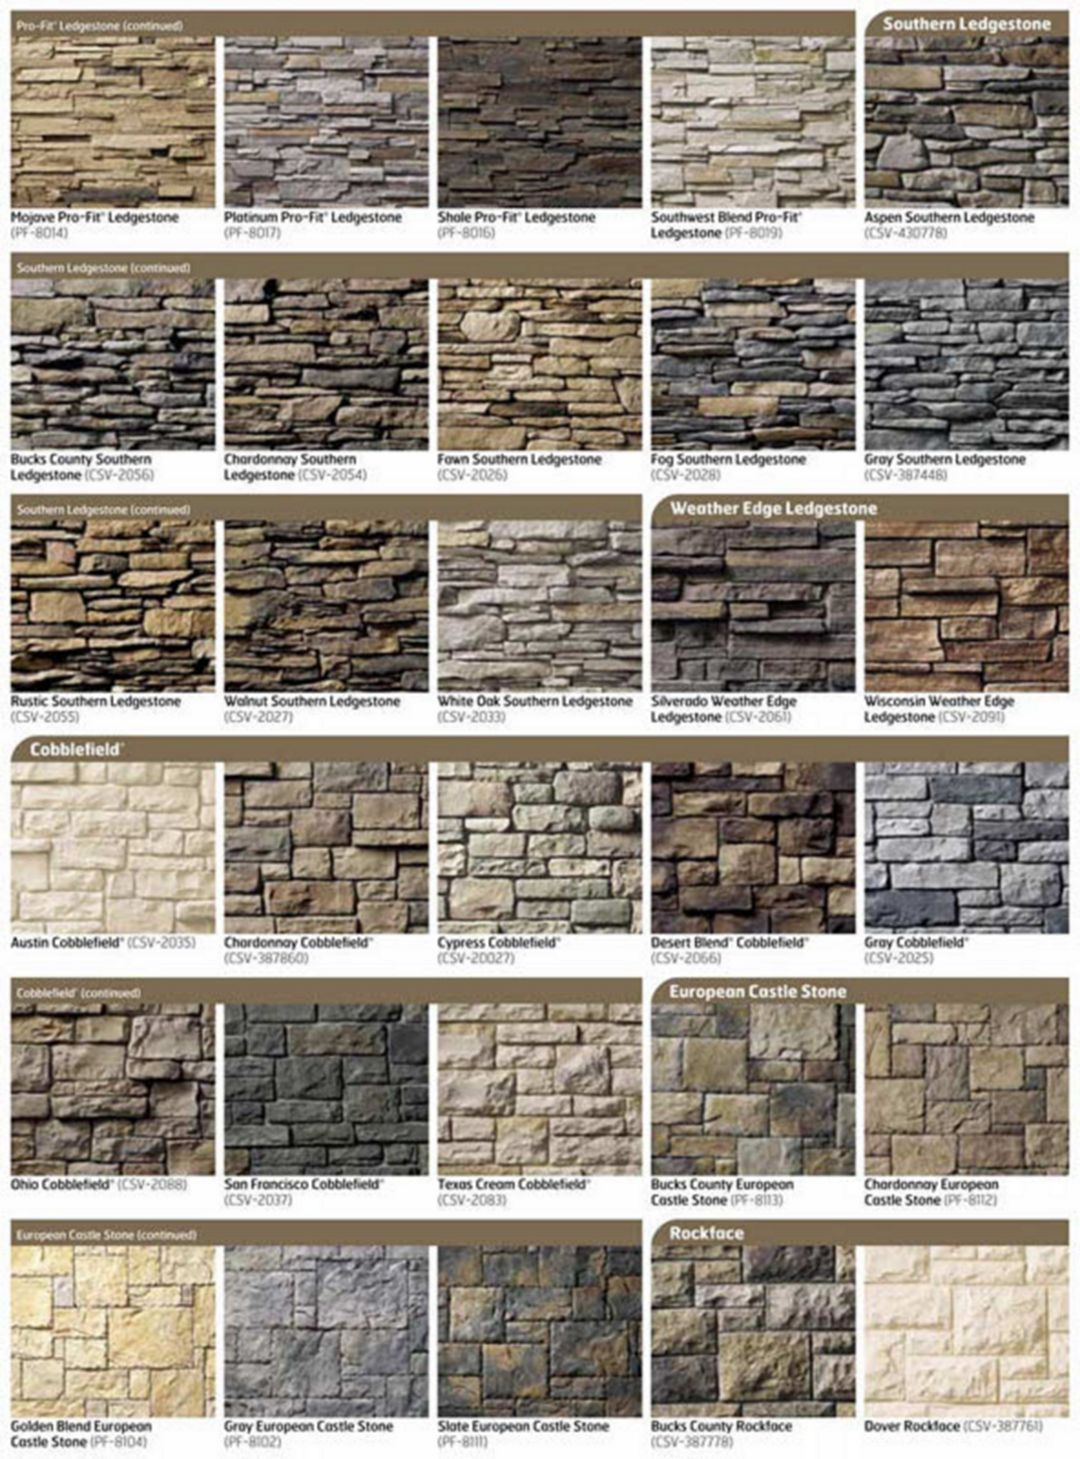 15 Most Unique Home Exterior With Stone Ideas For Amazing Home Exterior House Colors Brick Exterior House Stone Veneer